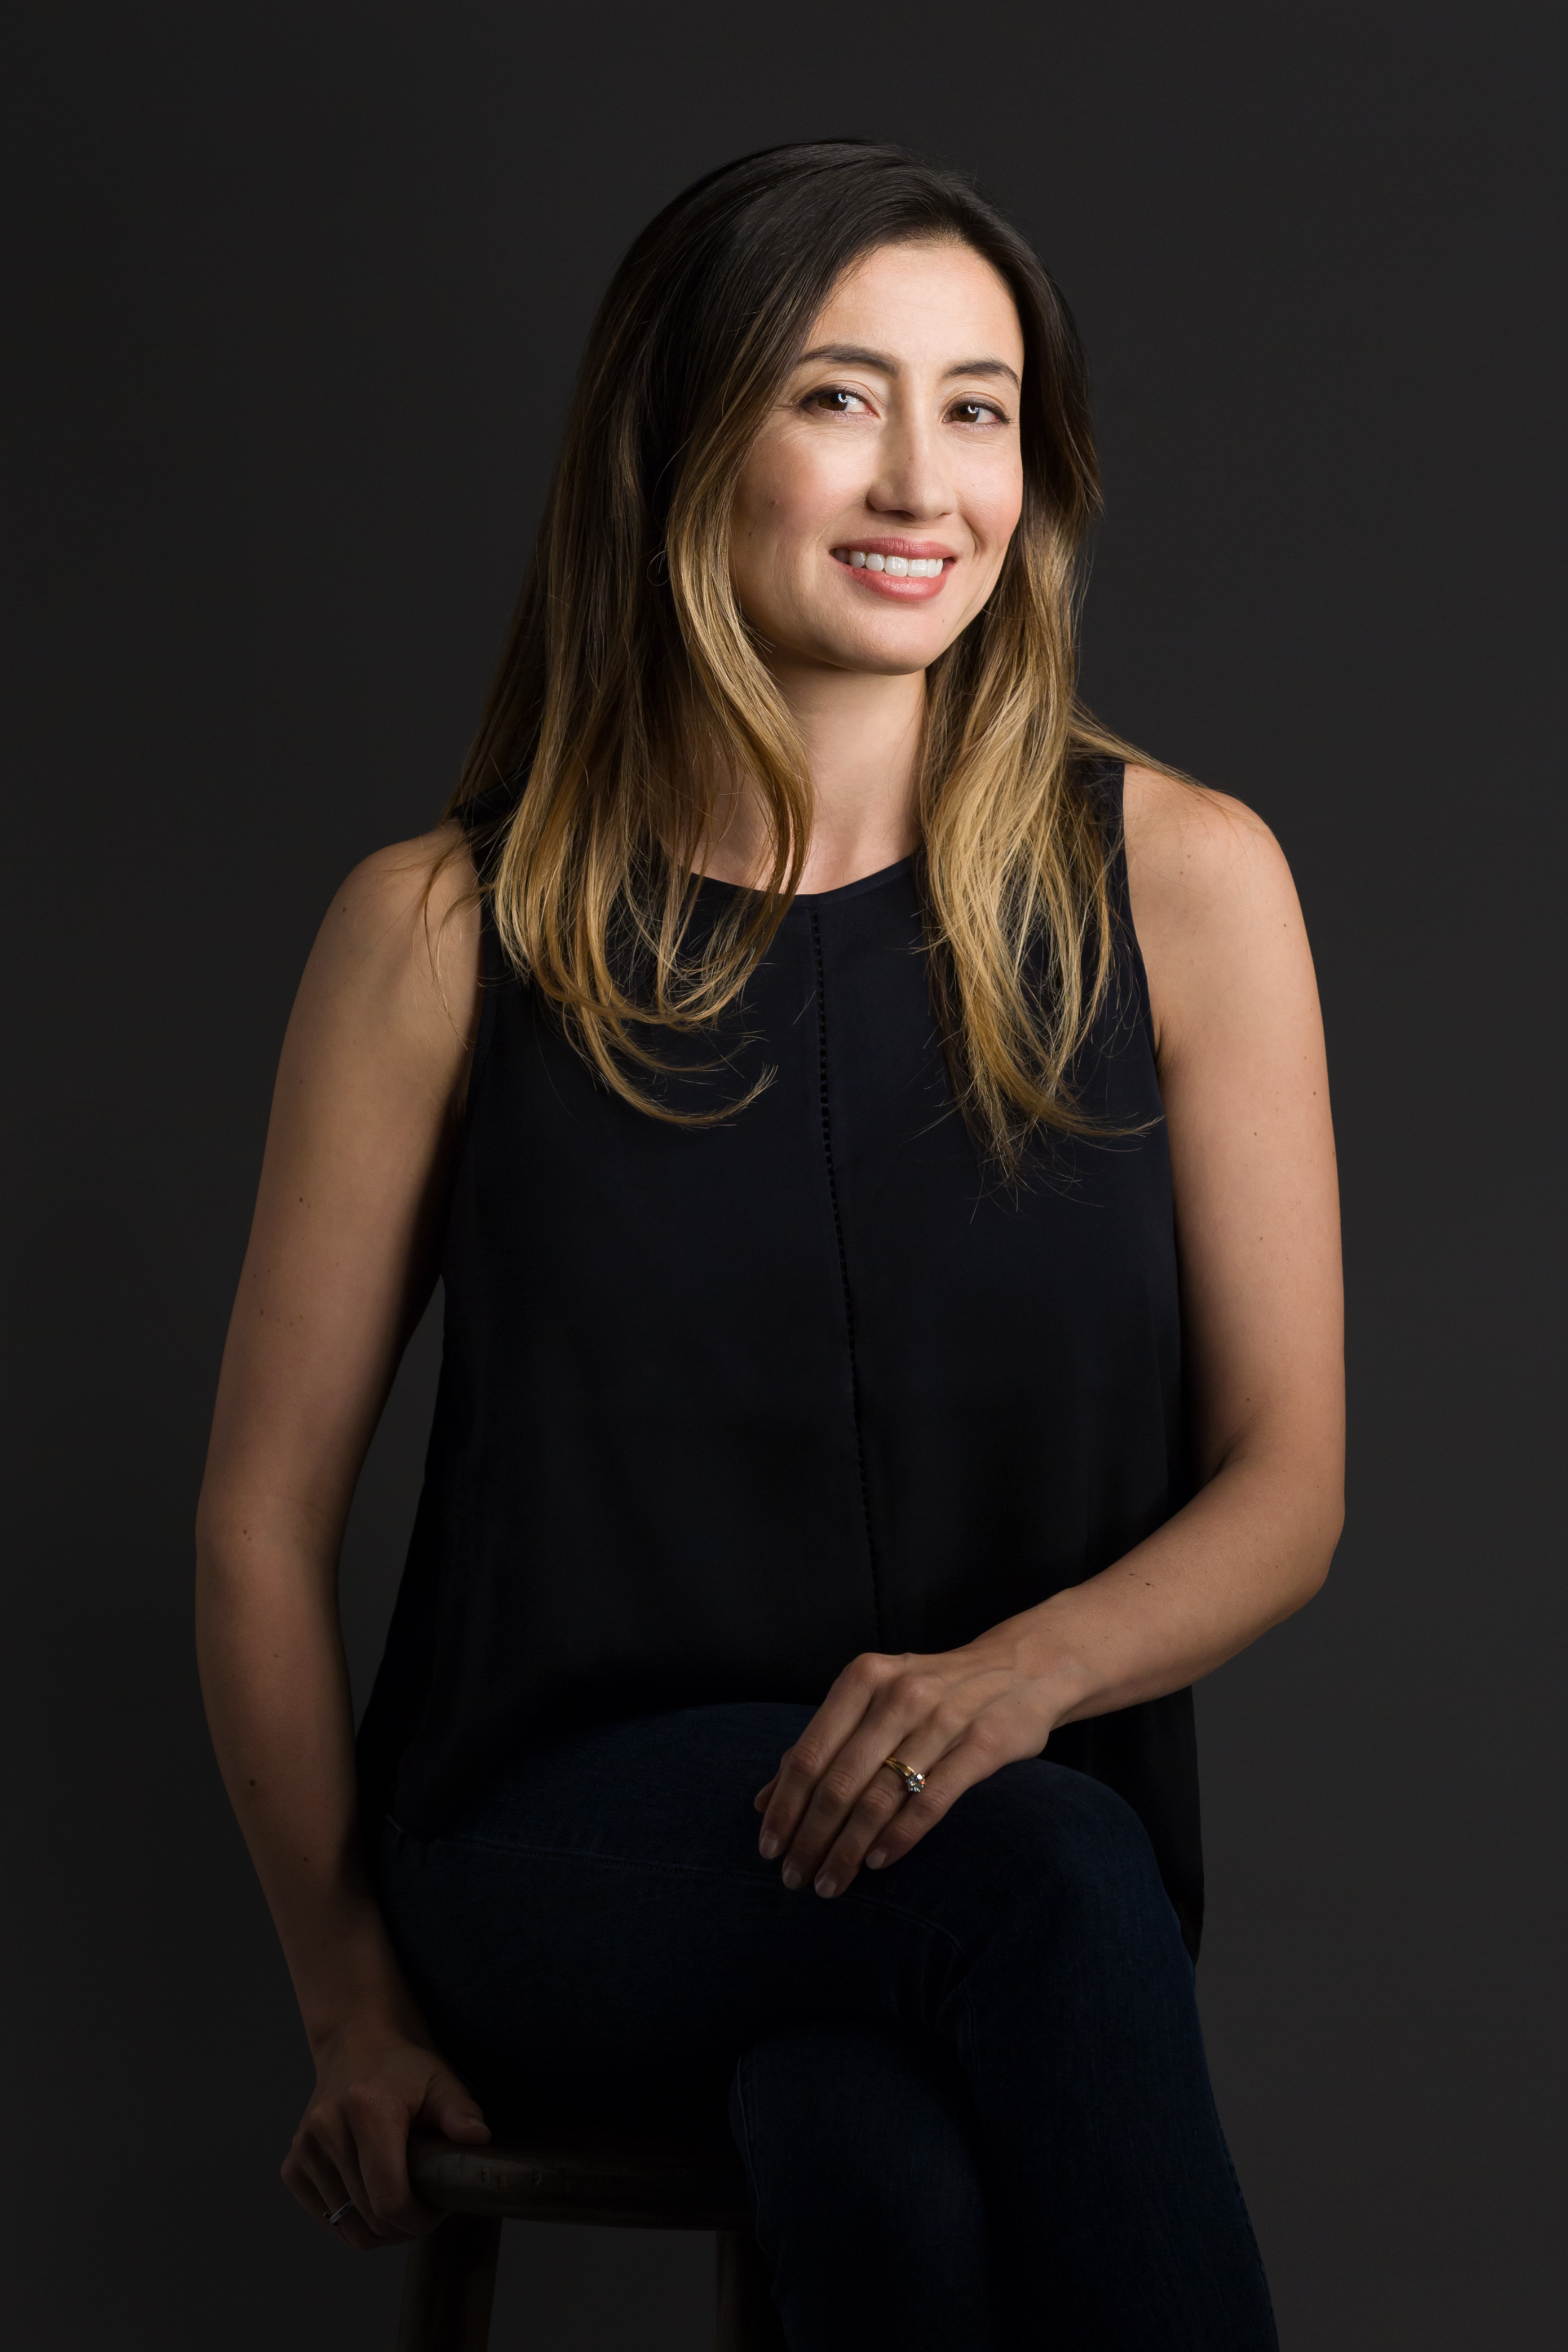 Katrina Lake, founder and ceo of Stitch Fix.